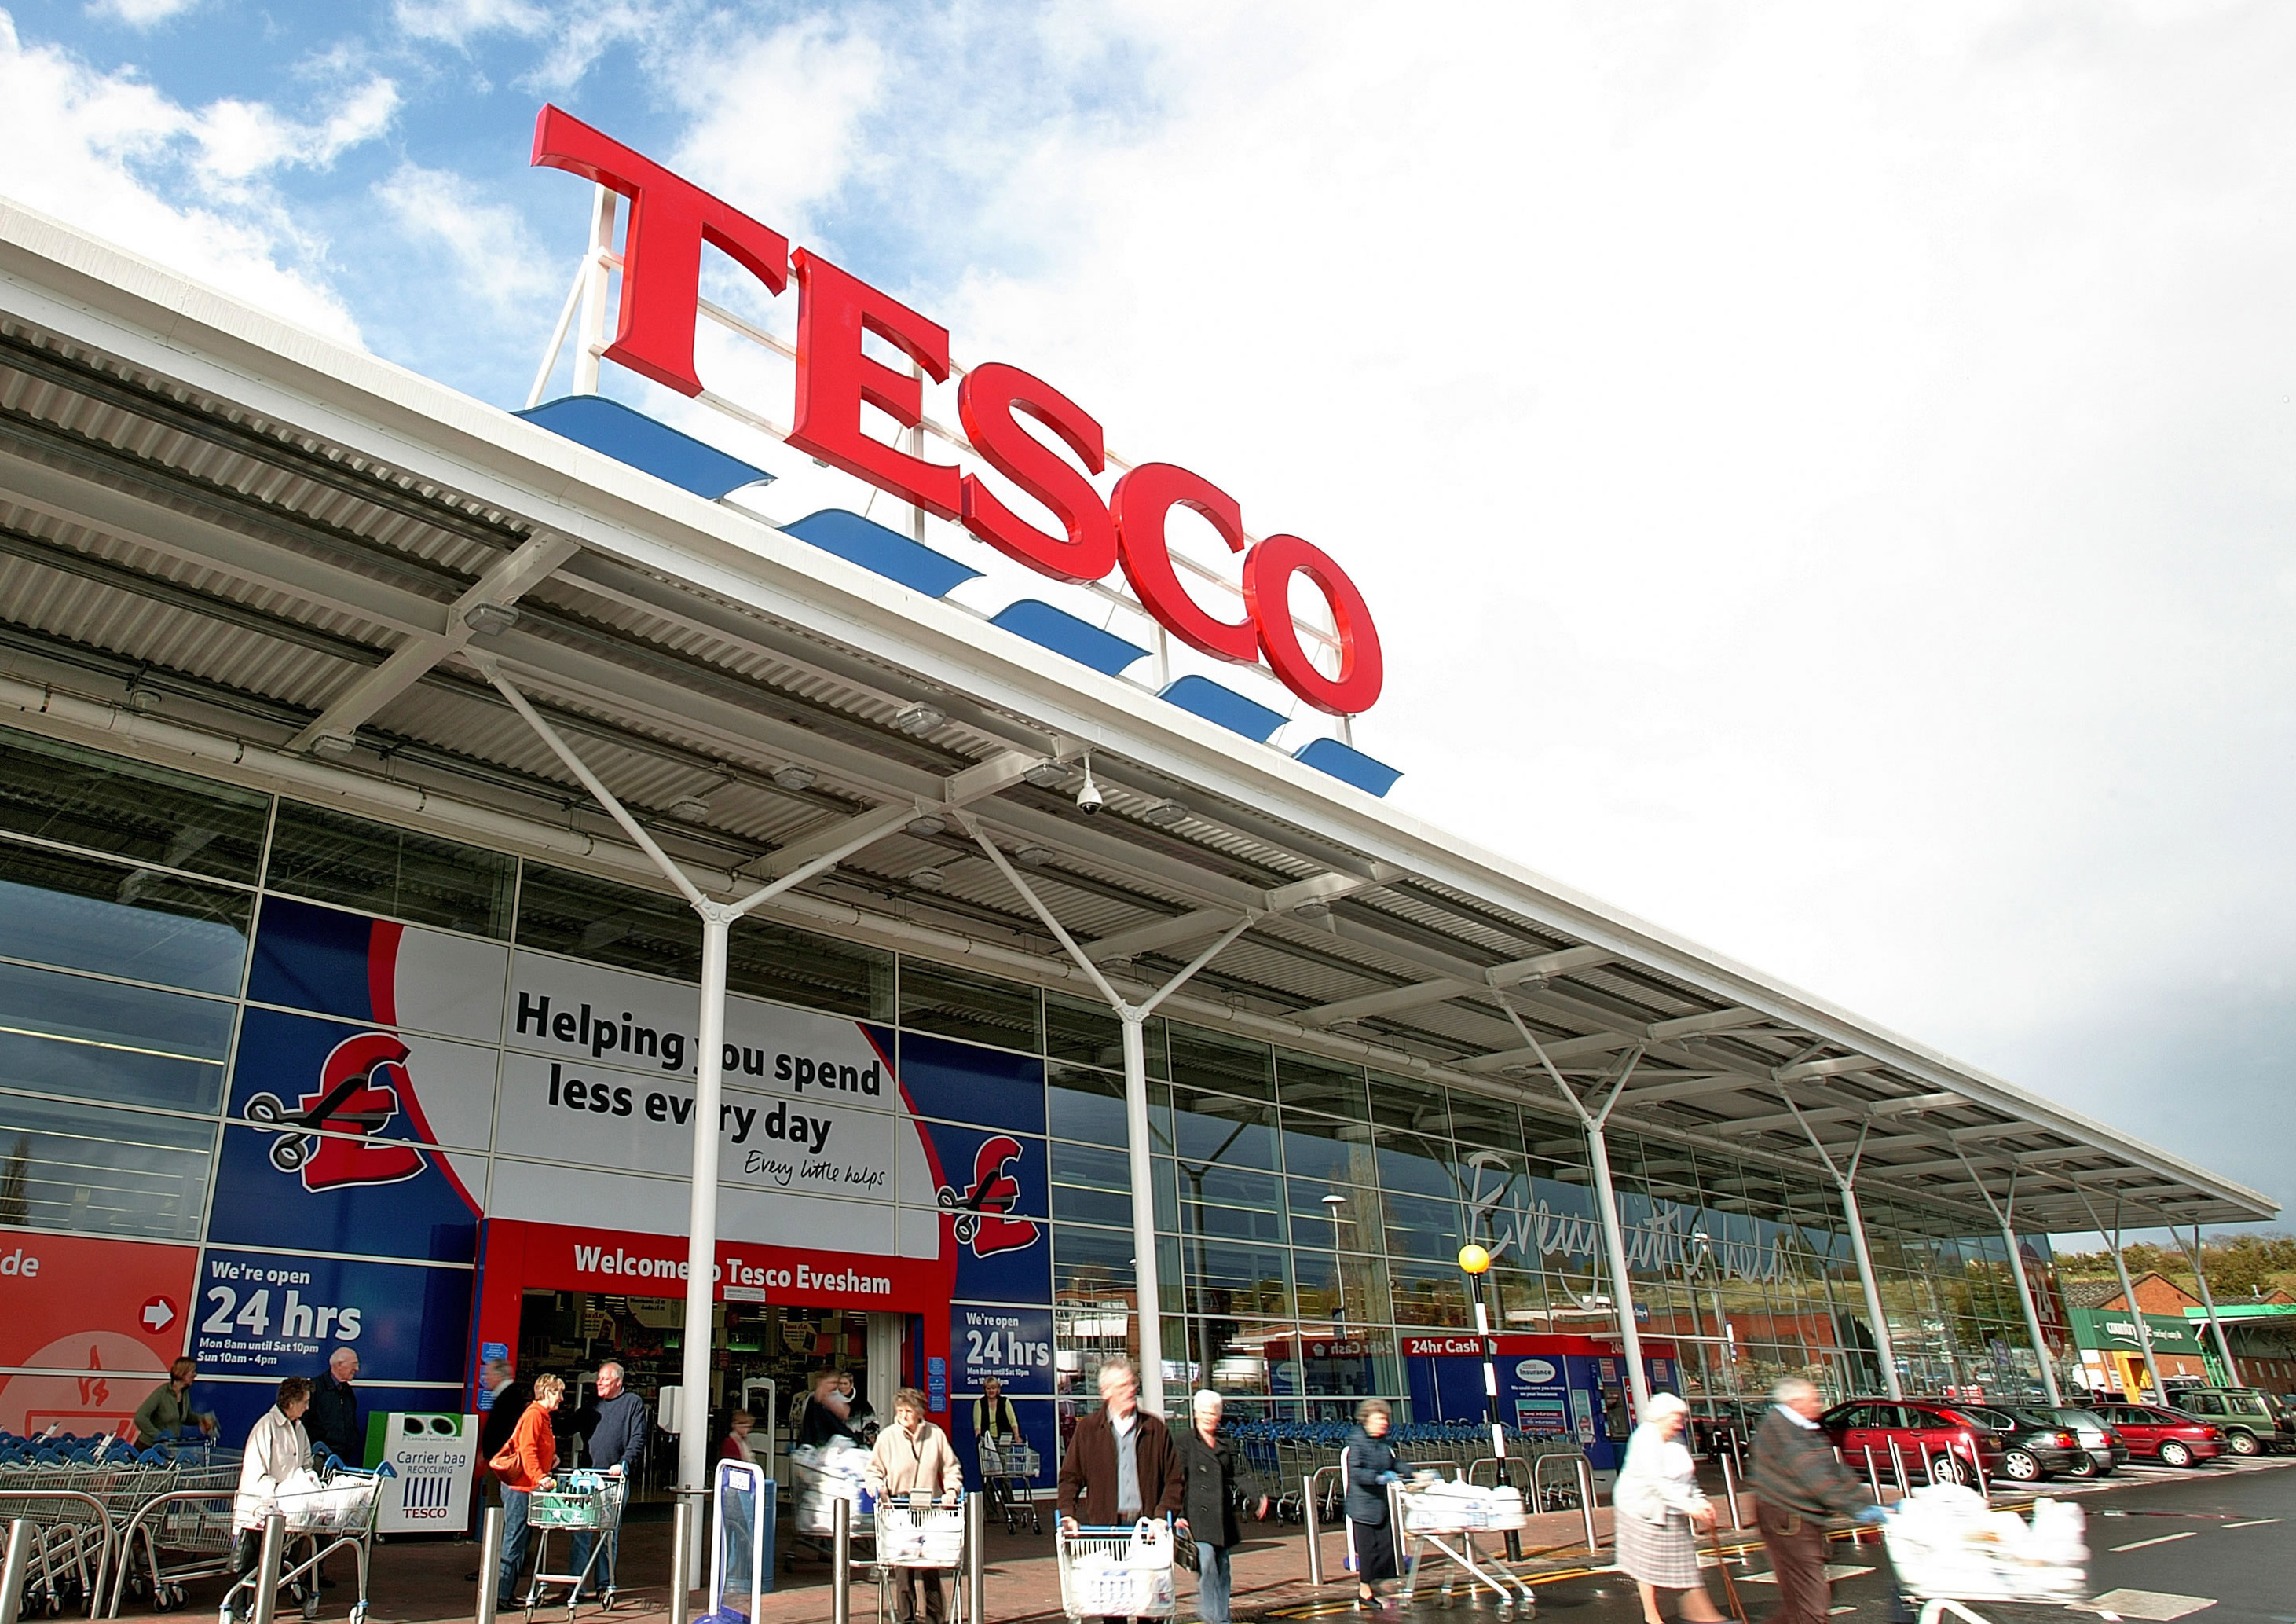 Shop now with the latest Tesco voucher codes & deals for December Choose from the 17 best working discount codes & sales to help you save at Tesco now. Save with the latest Tesco .